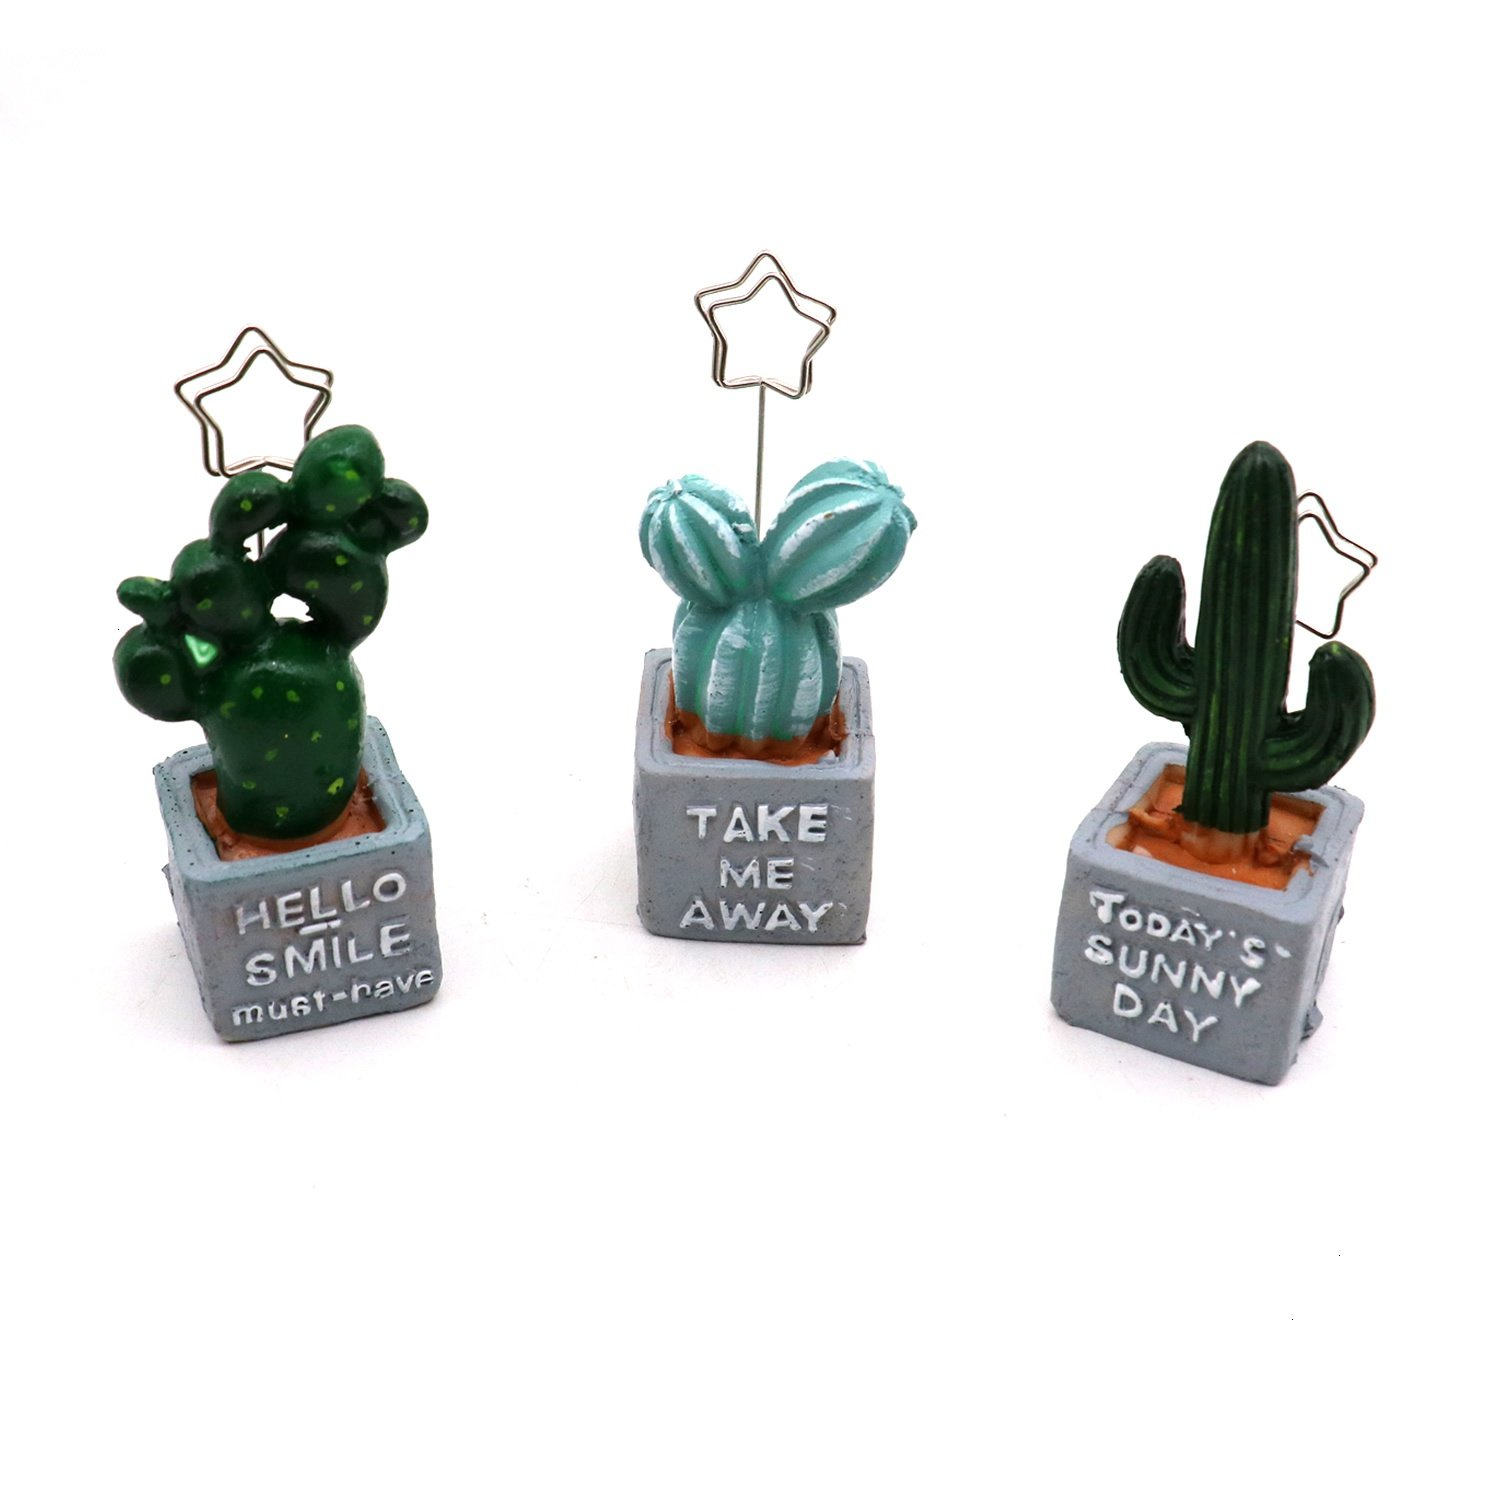 HUELE 3 Pcs Resin Cactus Bonsai Shape Name Card Holder Photo Clip Note Memo Stand Table Decoration Clamps Stand for Office Supplies Accessories